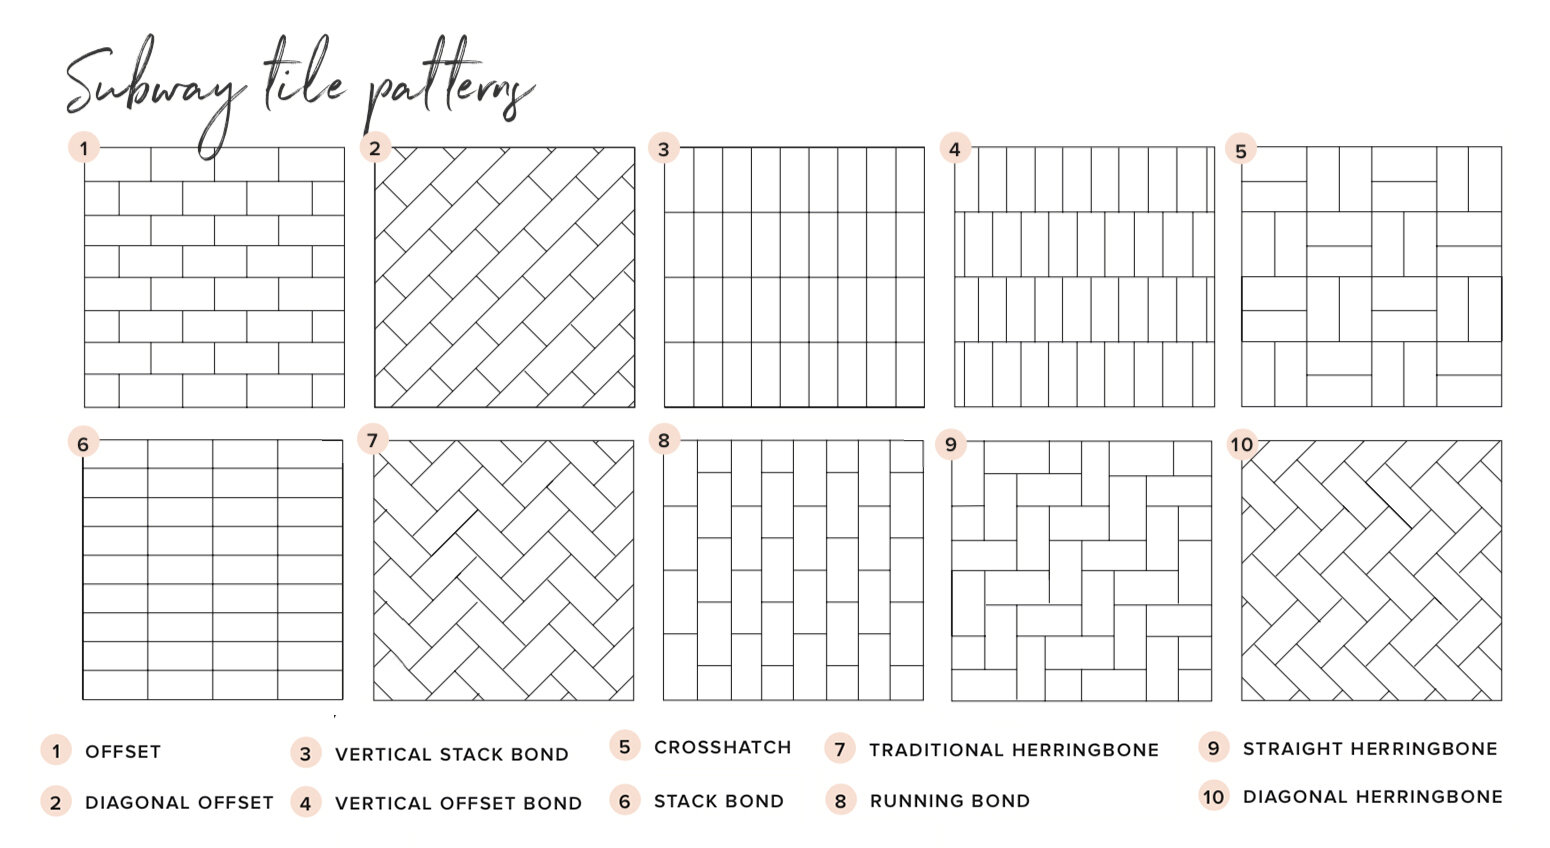 how many ways can you lay subway tiles